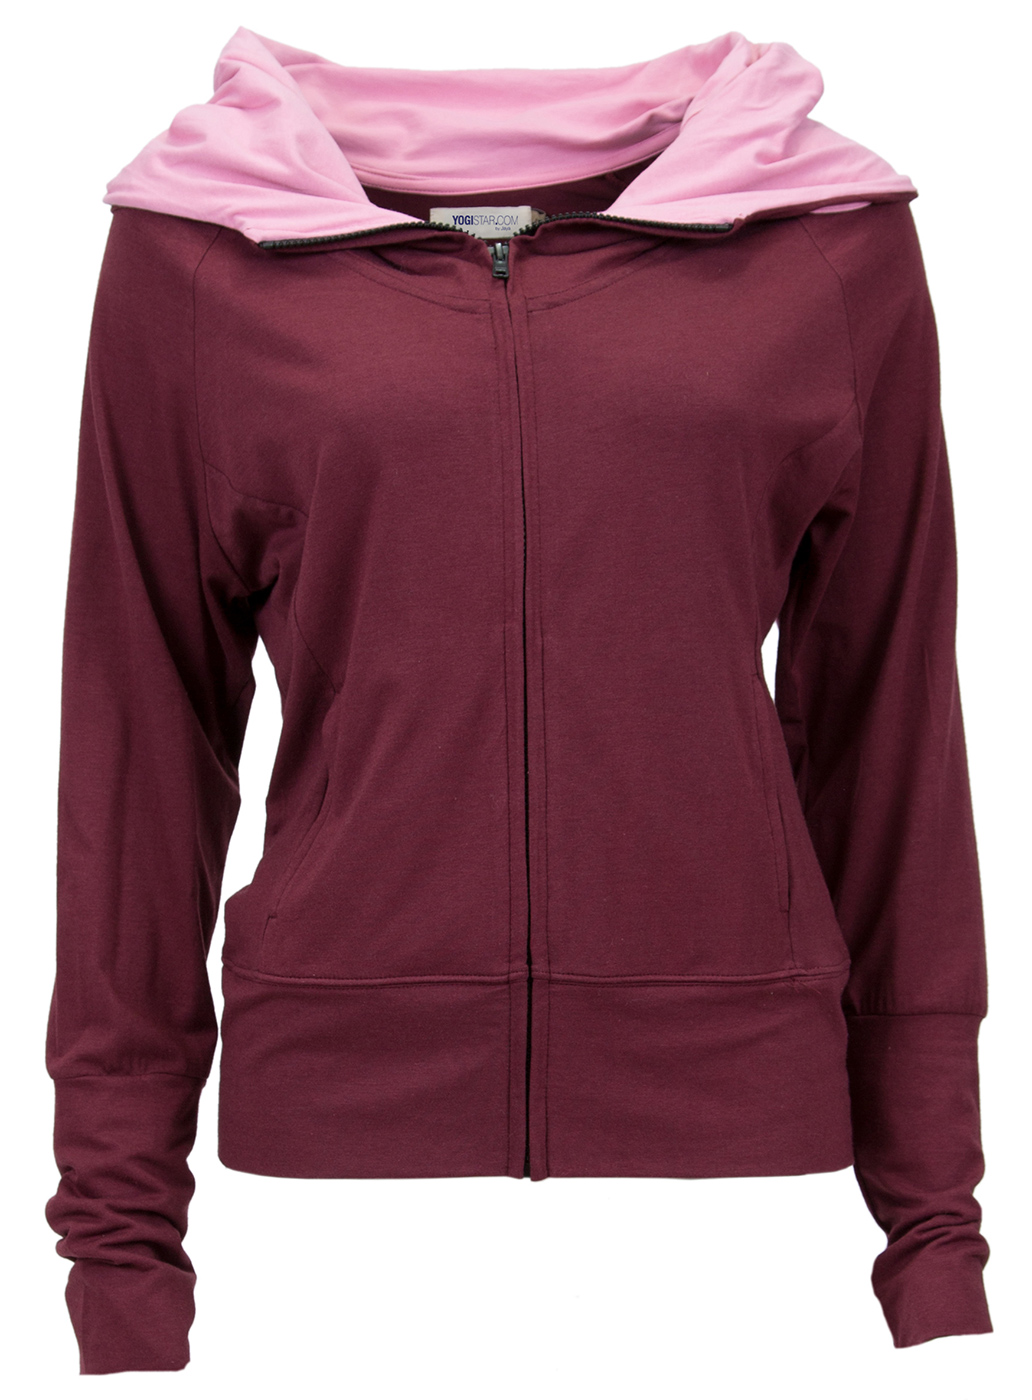 Yogi jacket Devi - burgundy